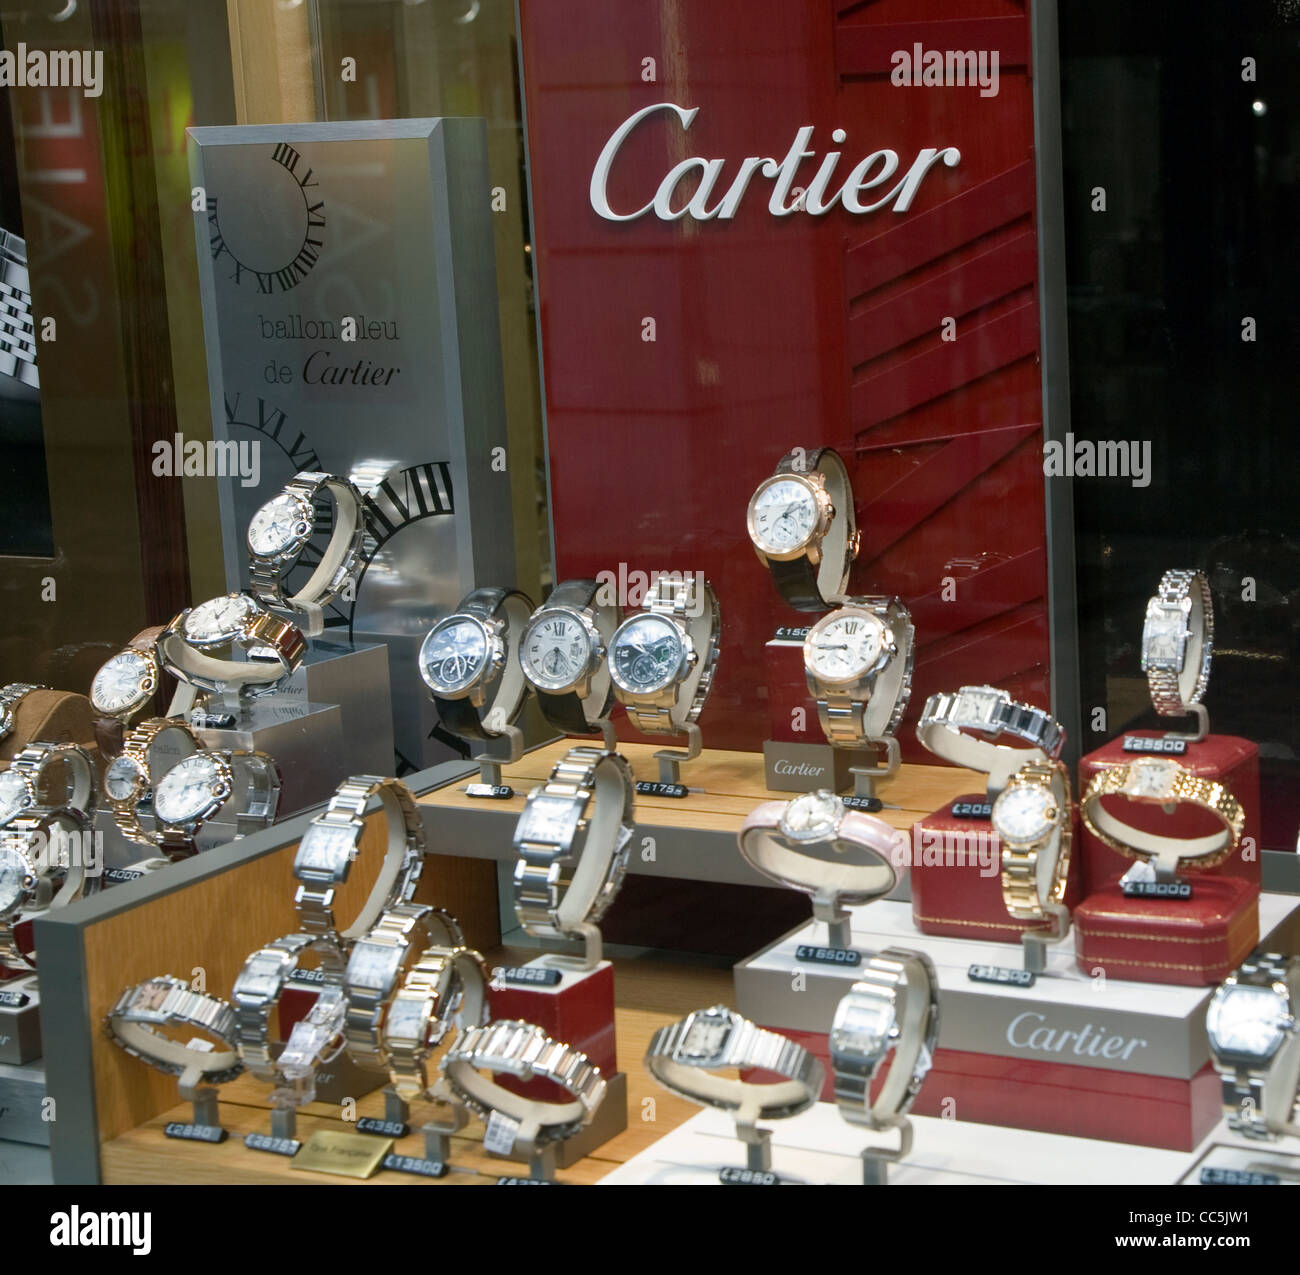 photo display watches shop window stock cartier watch alamy